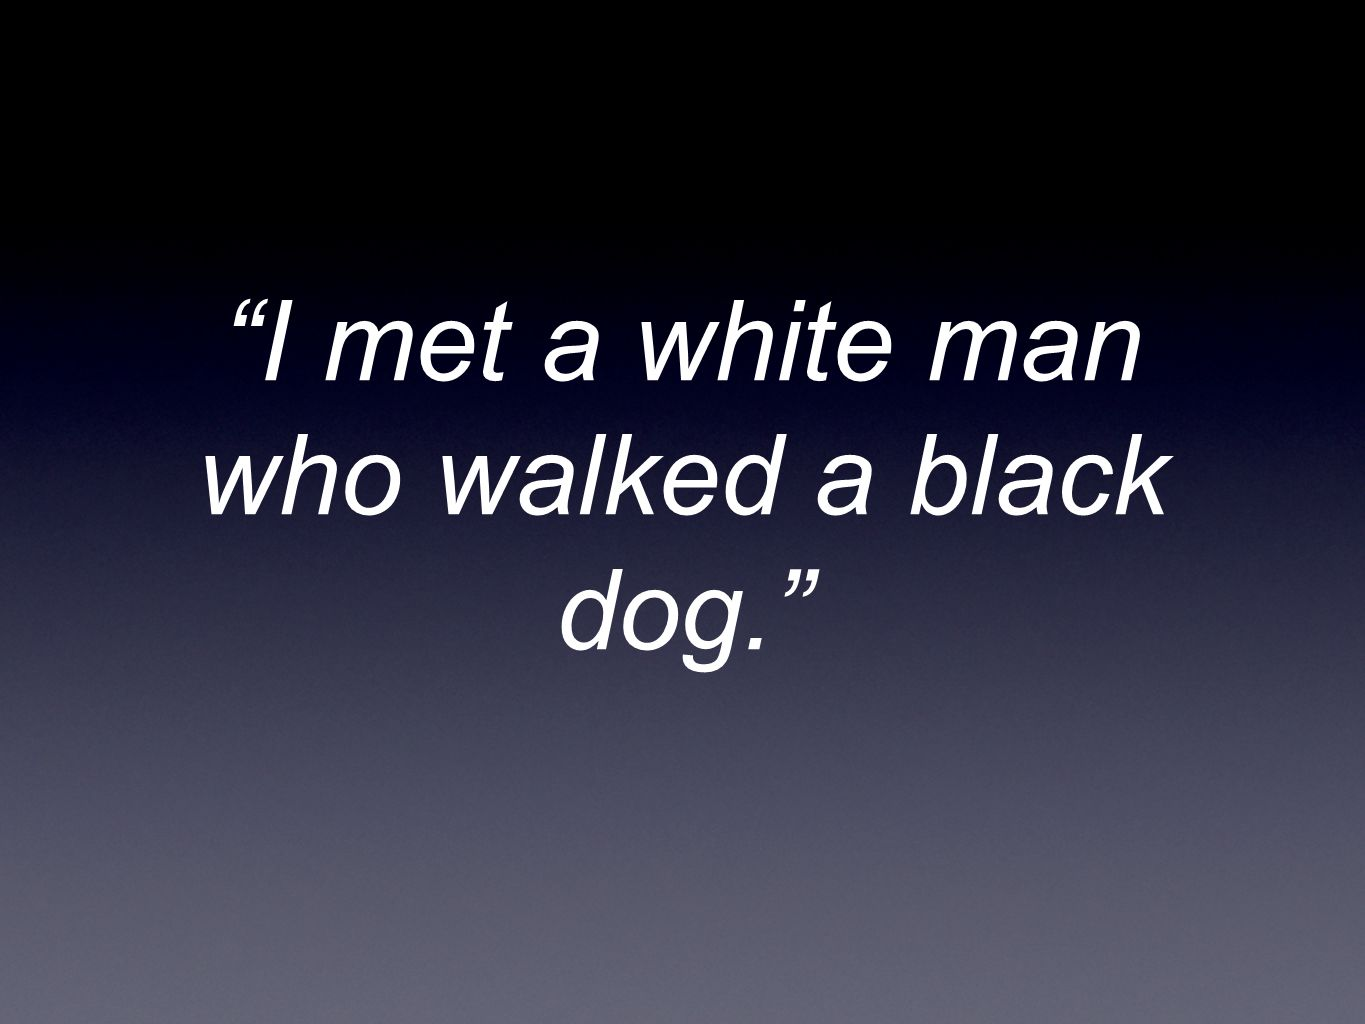 I met a white man who walked a black dog.